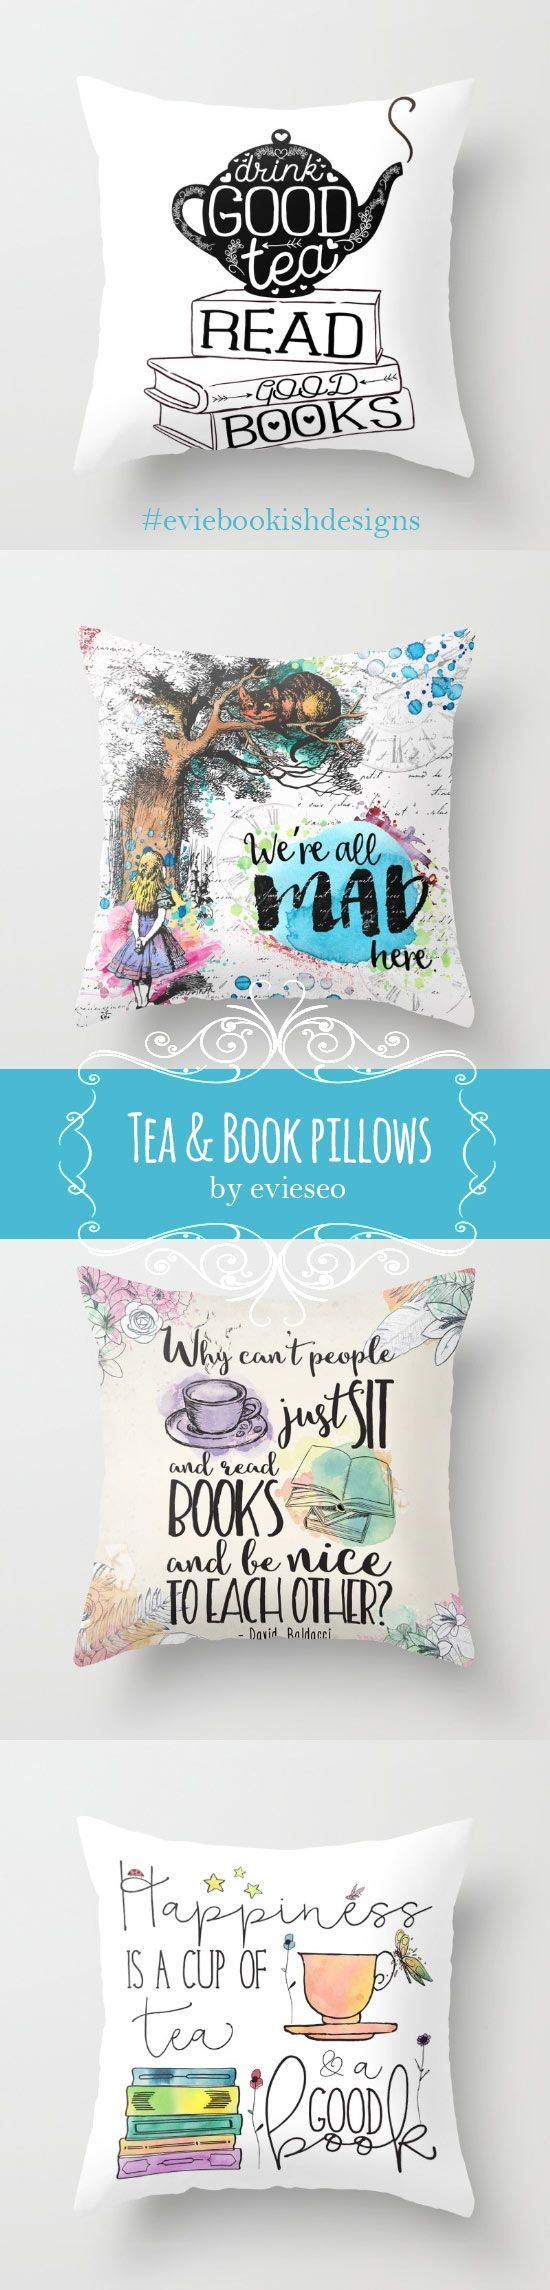 The most beautiful tea and book lover designs you've ever seen. #tea